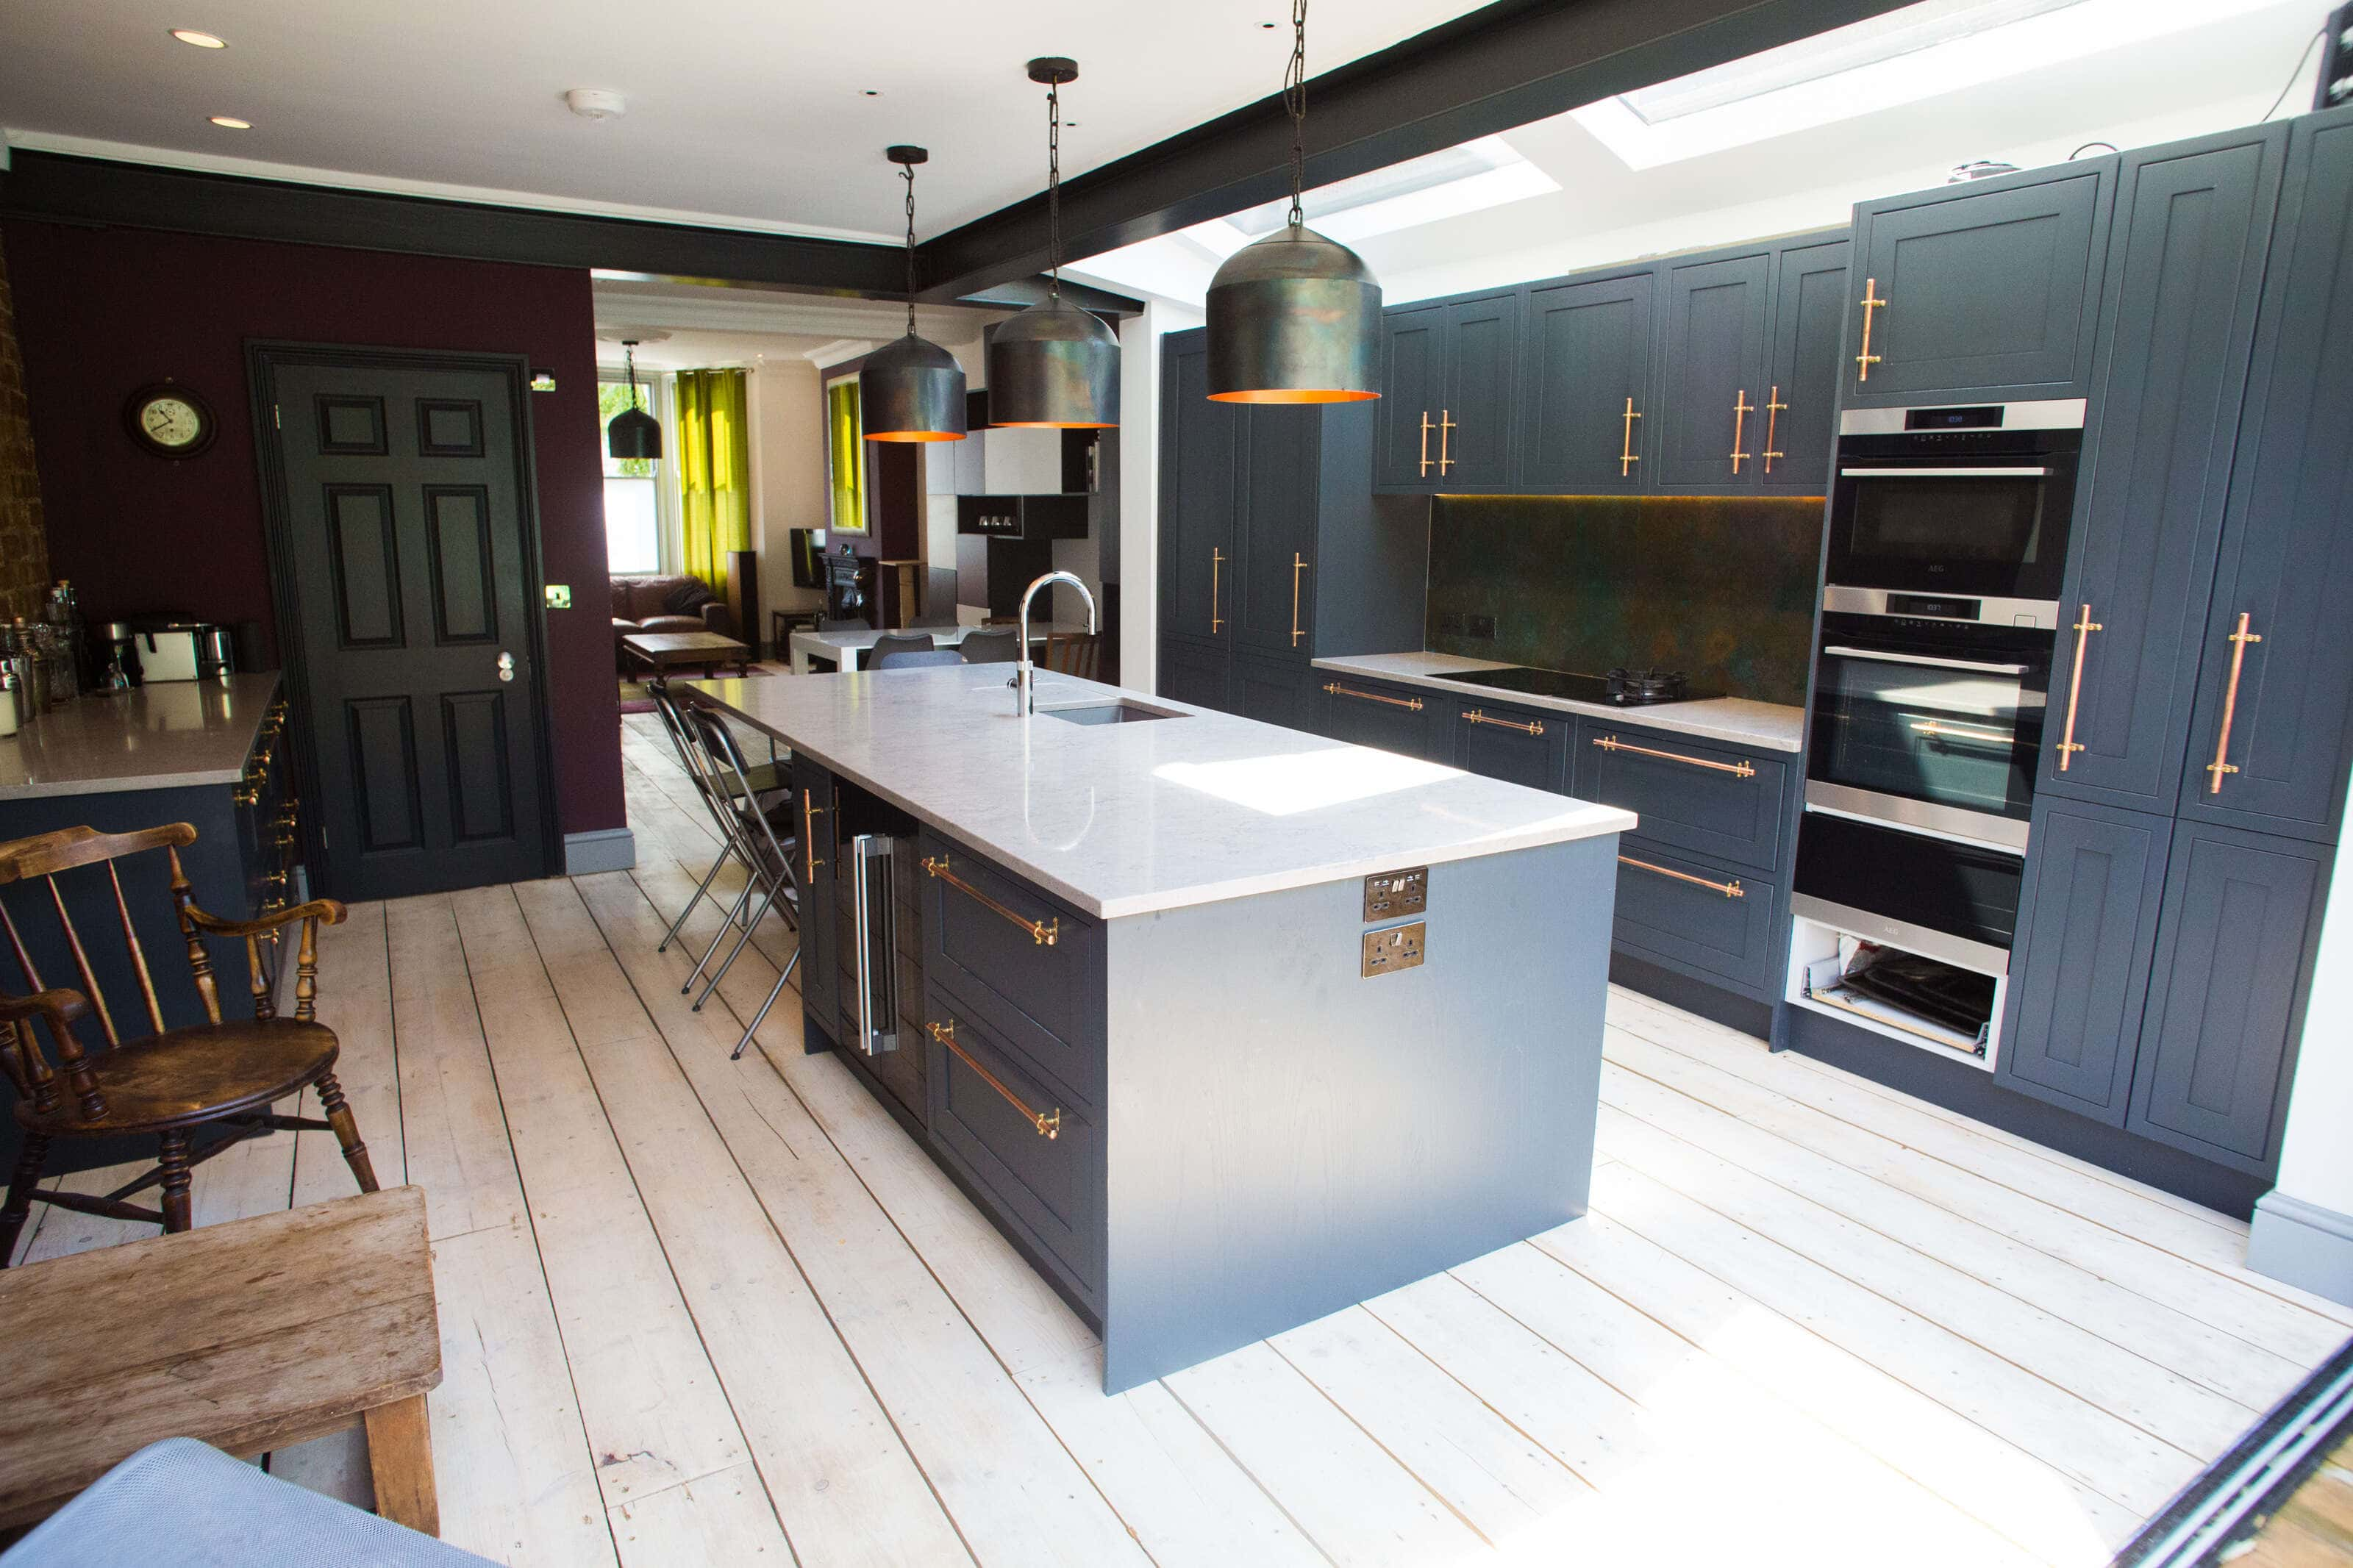 studio kitchen with seating area